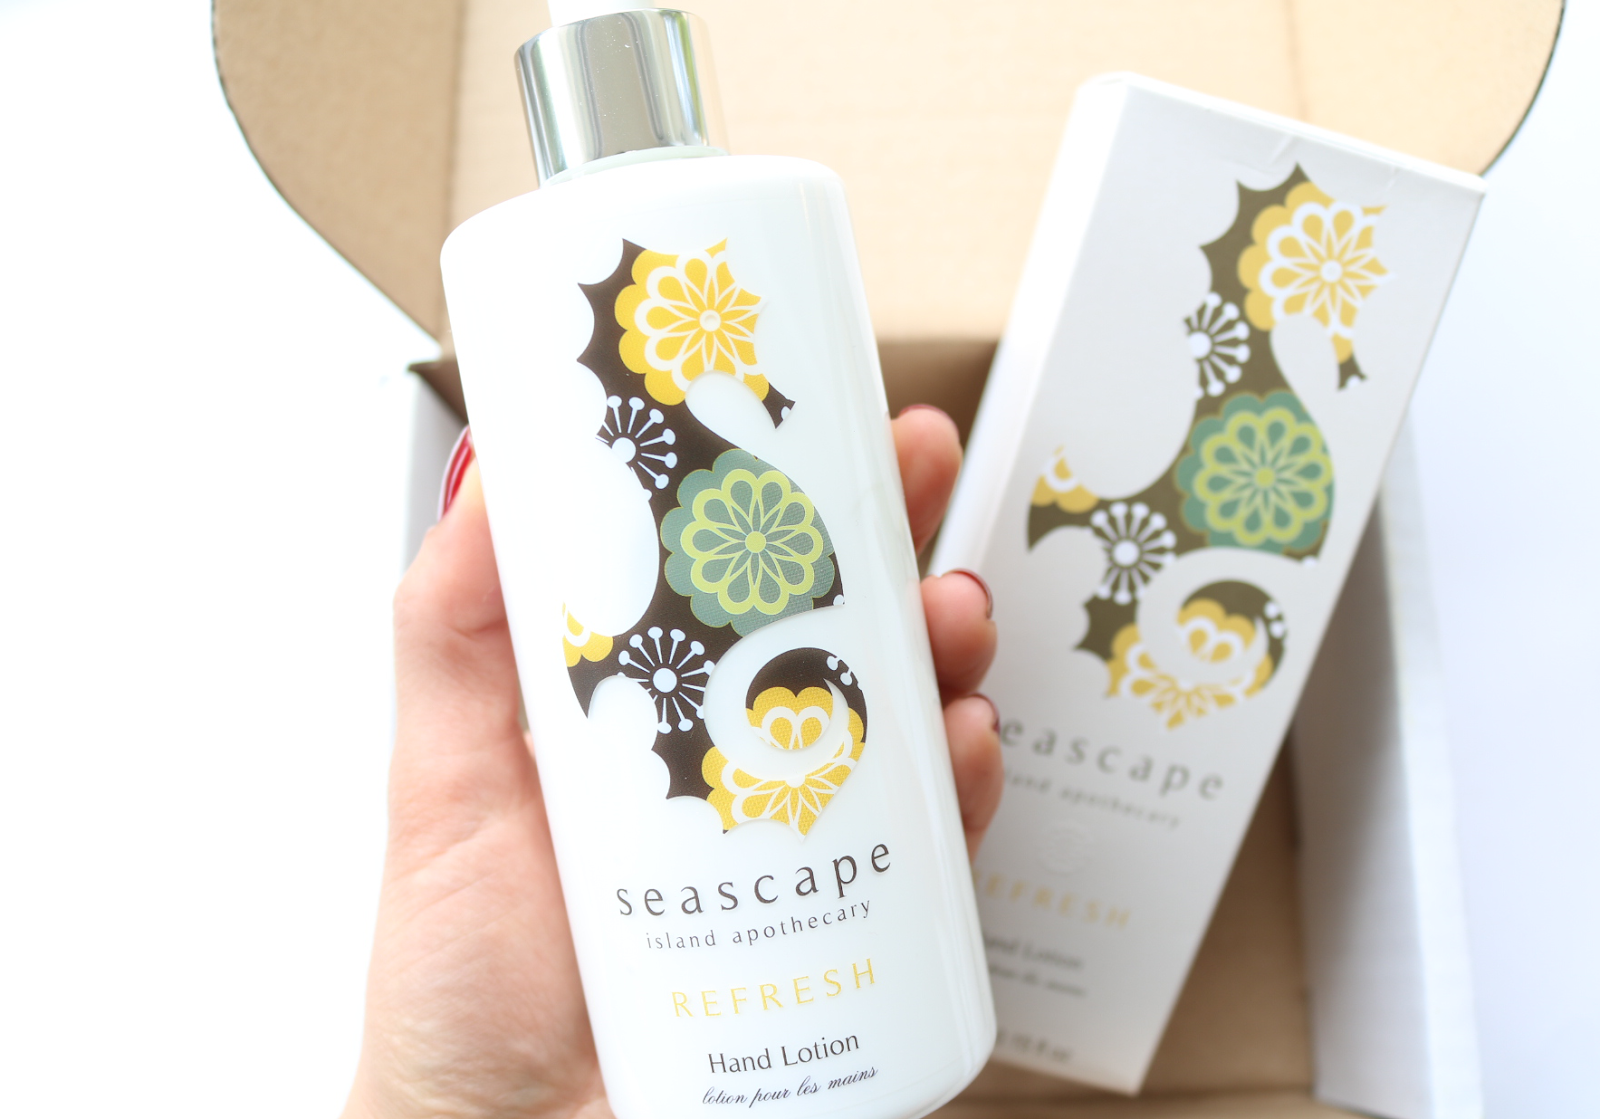 Seascape Island Apothecary Refresh Hand Lotion